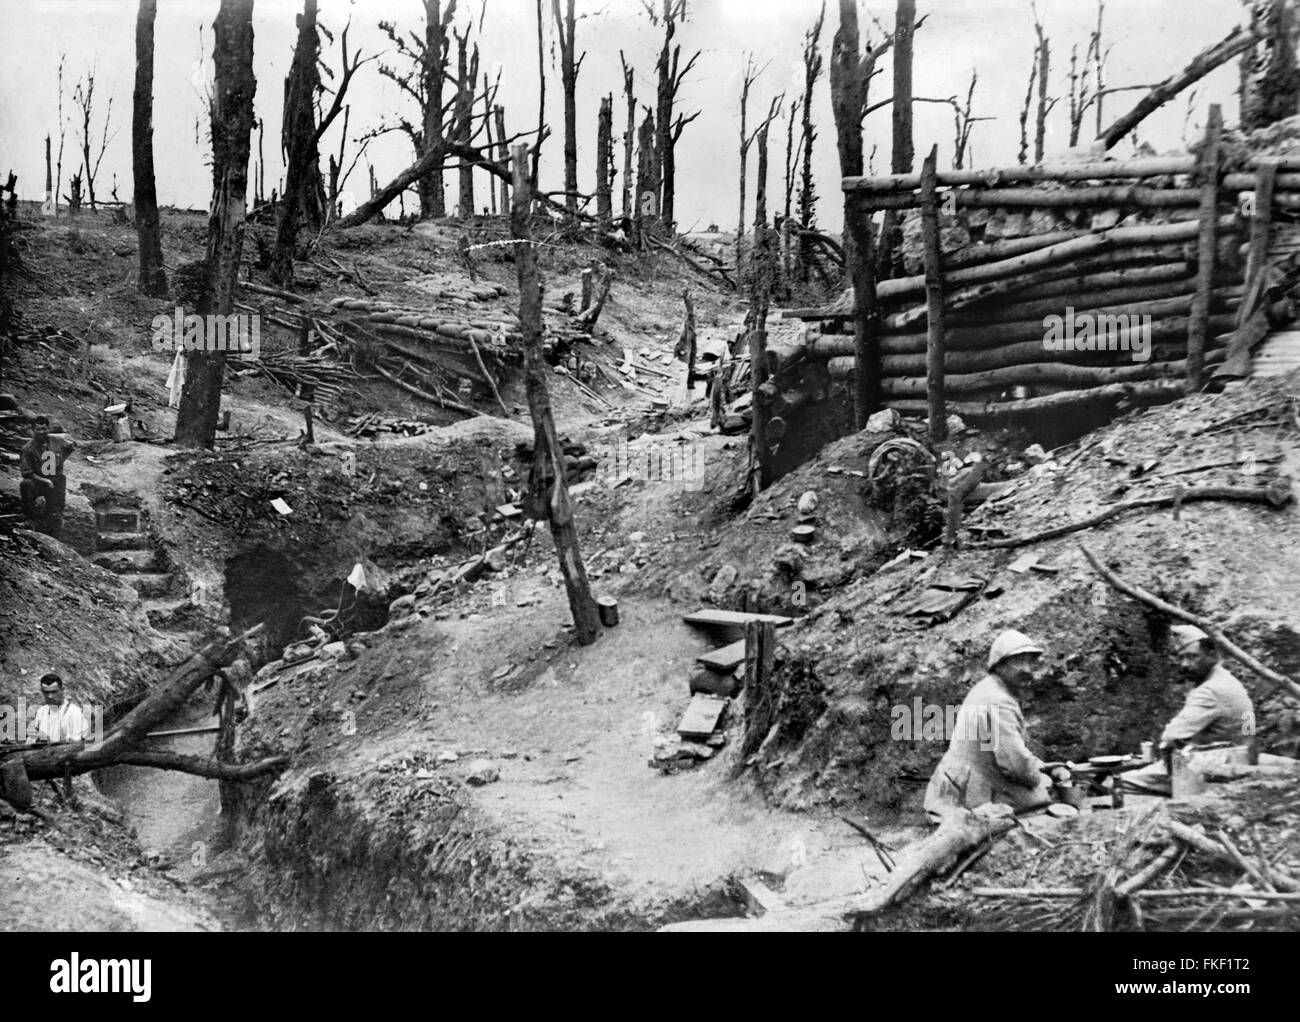 Battle of the Somme. Trenches in the Somme during World War I, c. 1916 - Stock Image